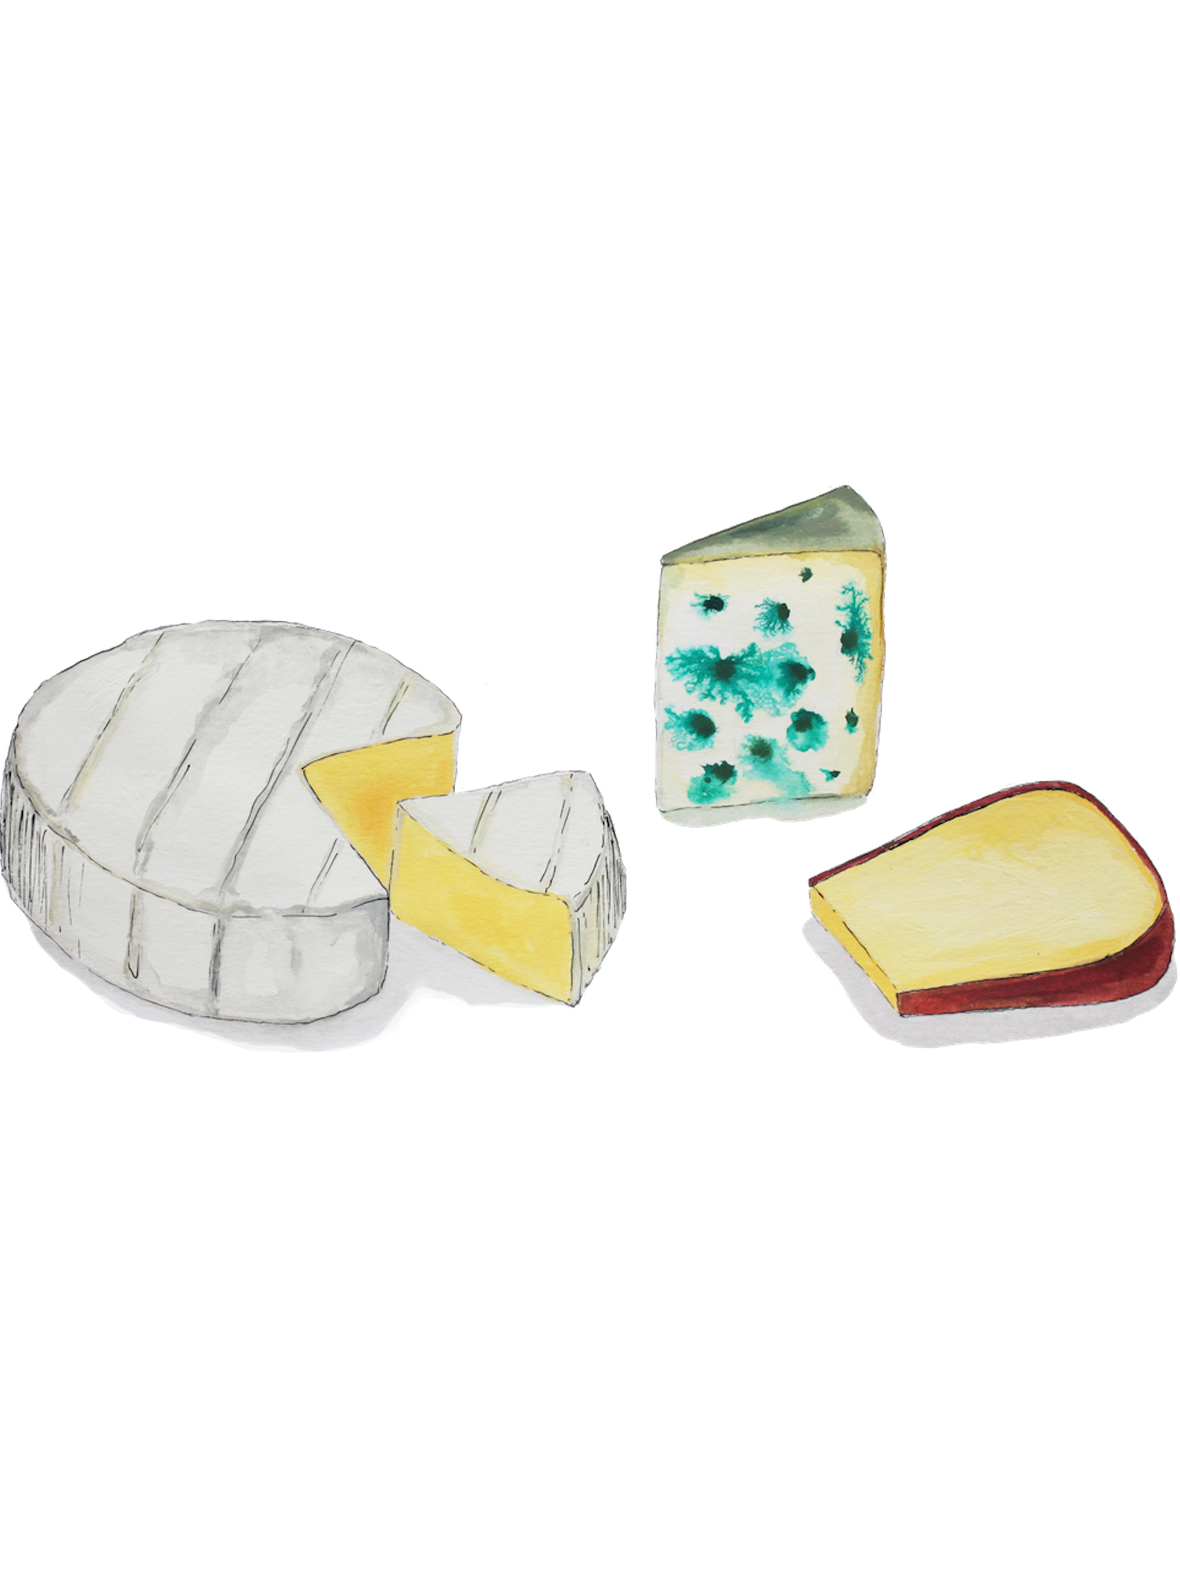 Illustration of a selection of three different cheeses, including Brie, Blue and Edam